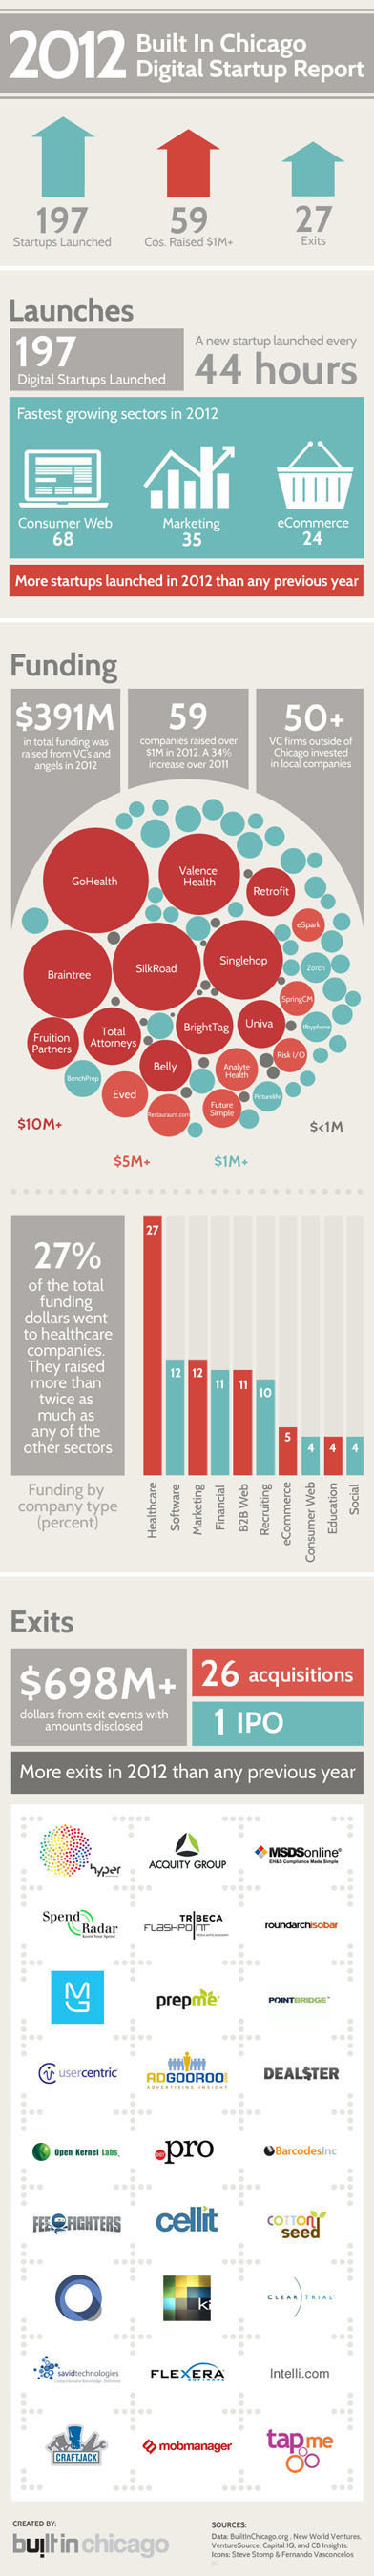 INFOGRAPHIC: The Built In Chicago Digital Startup Report shows growth in both launches and funding in 2012. ...